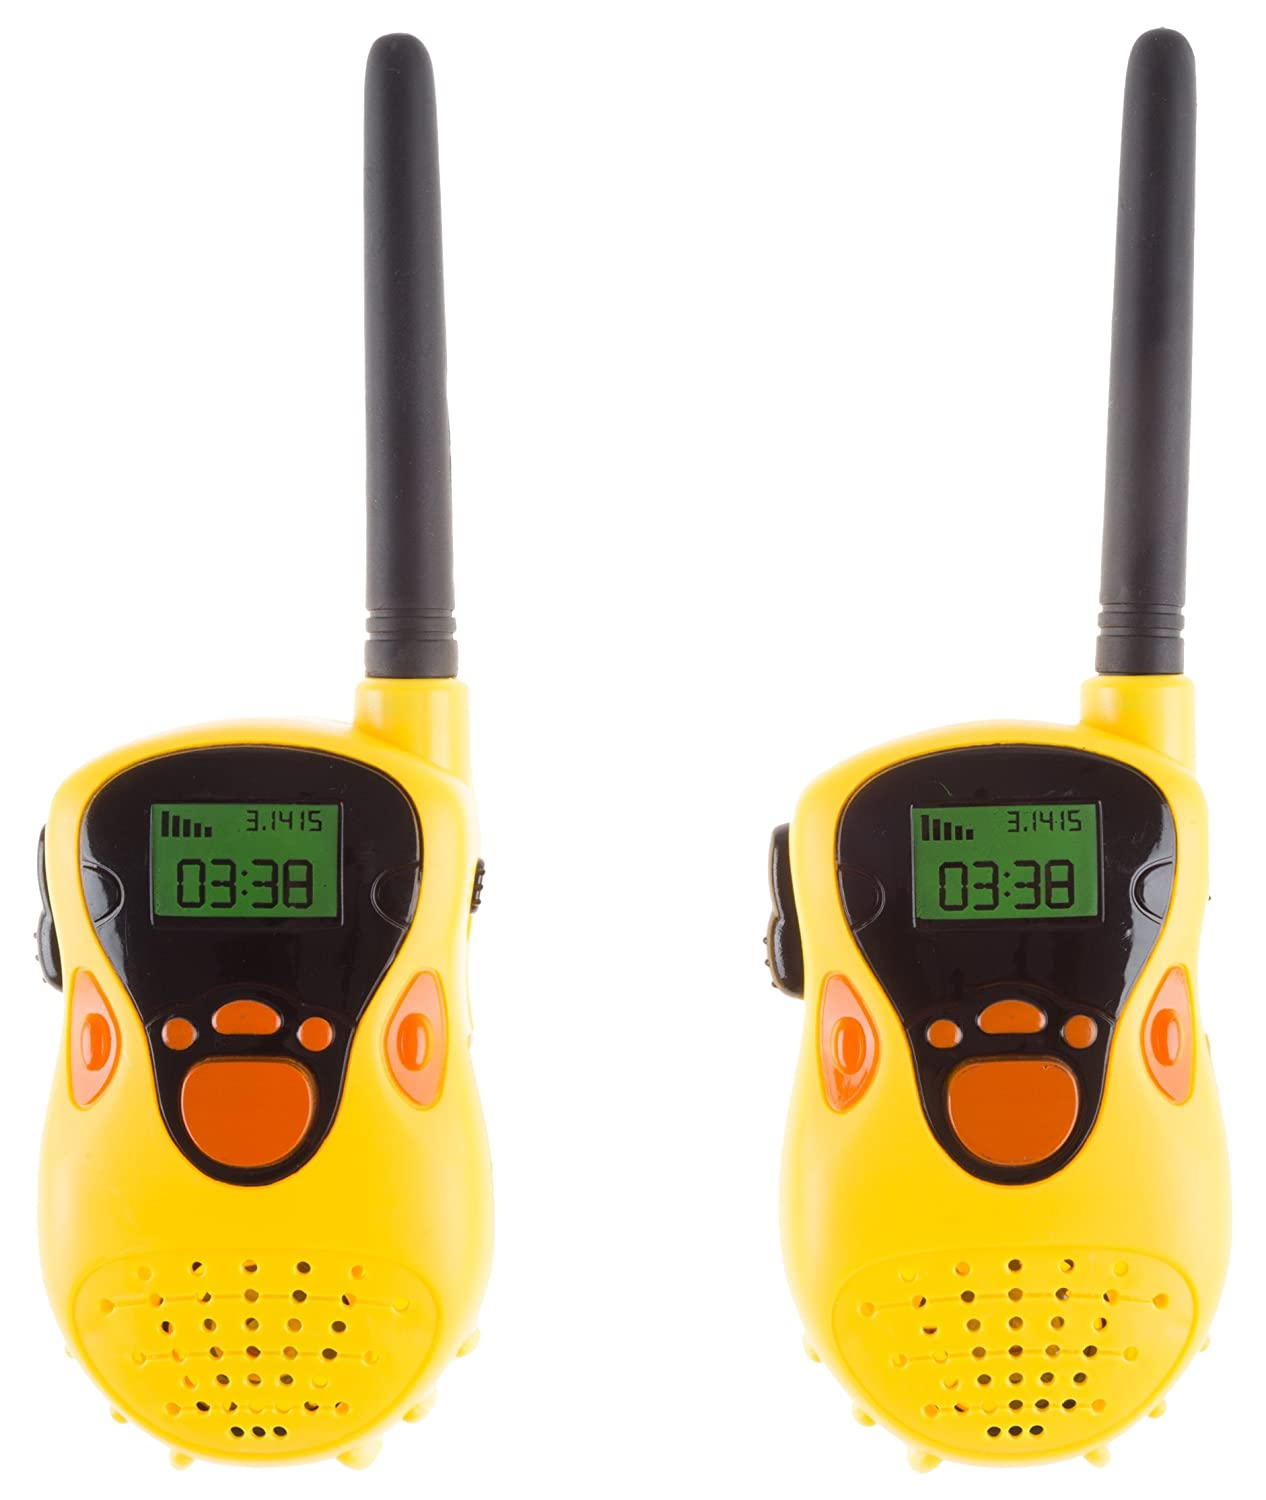 Hey! Play! 80-TK124565 Kids Walkie Talkie Set-2-Pack Indoor Outdoor Toy for Boys and Girls-Battery Operated and Easy to Use-Great for Fun Pretend Play, Yellow